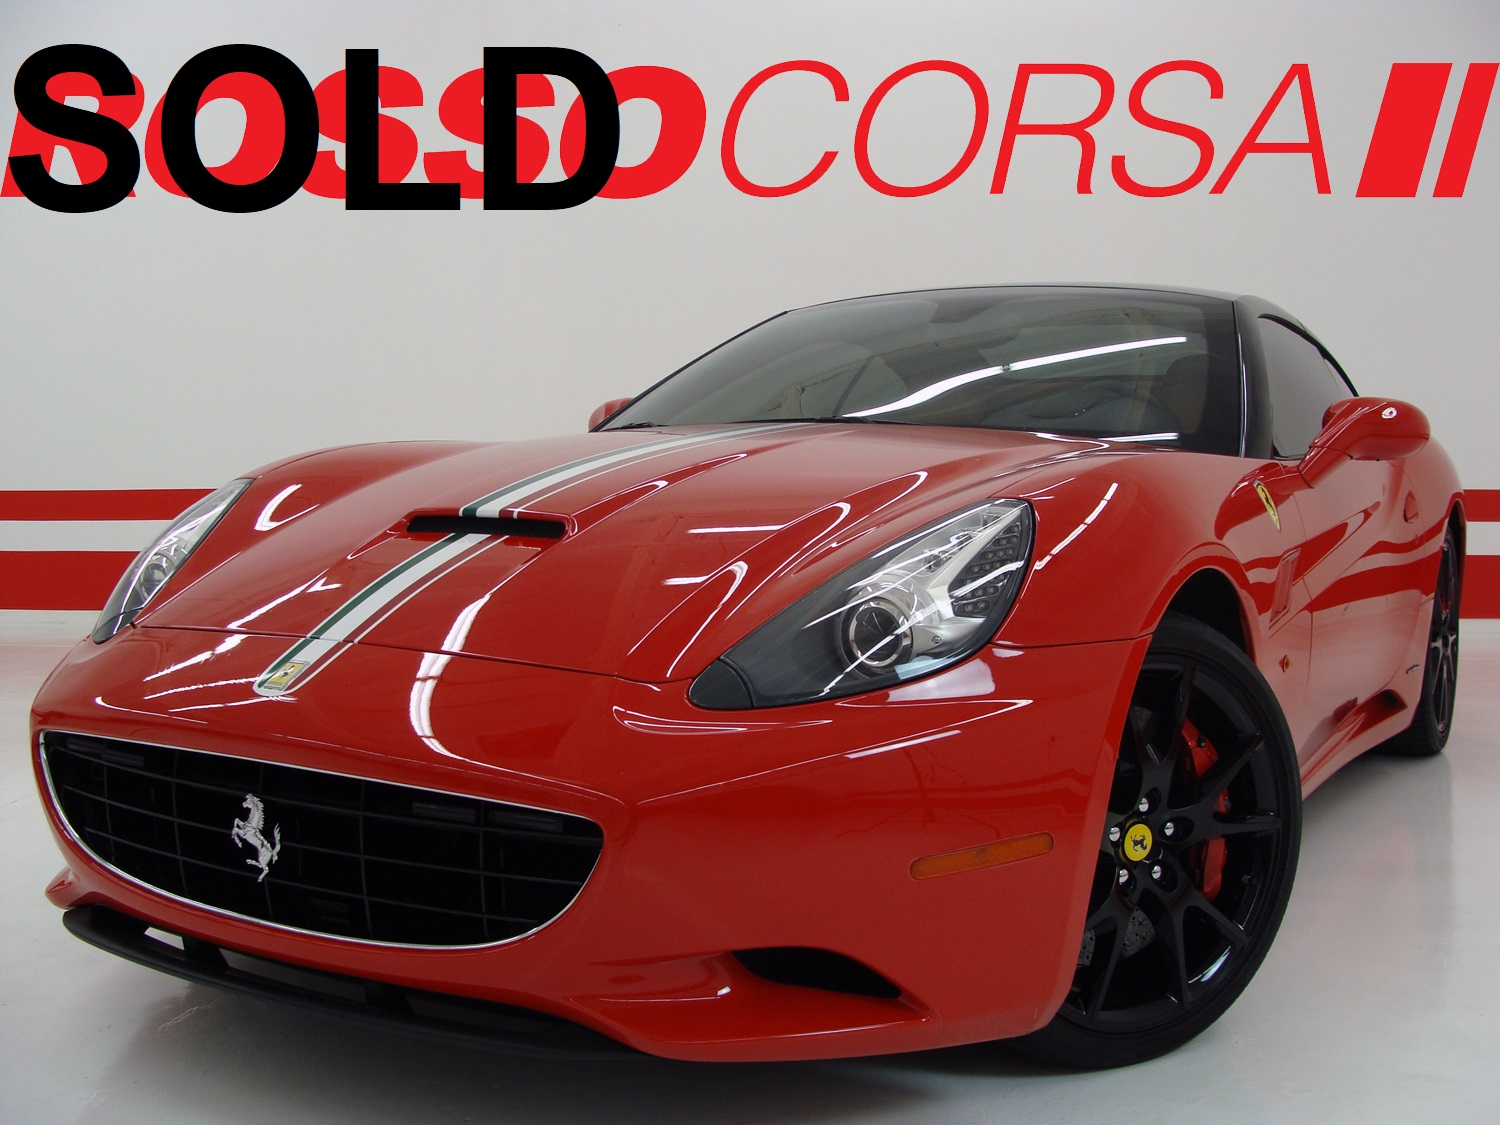 2010 Ferrari California - UPGRADES ($211K MSRP)